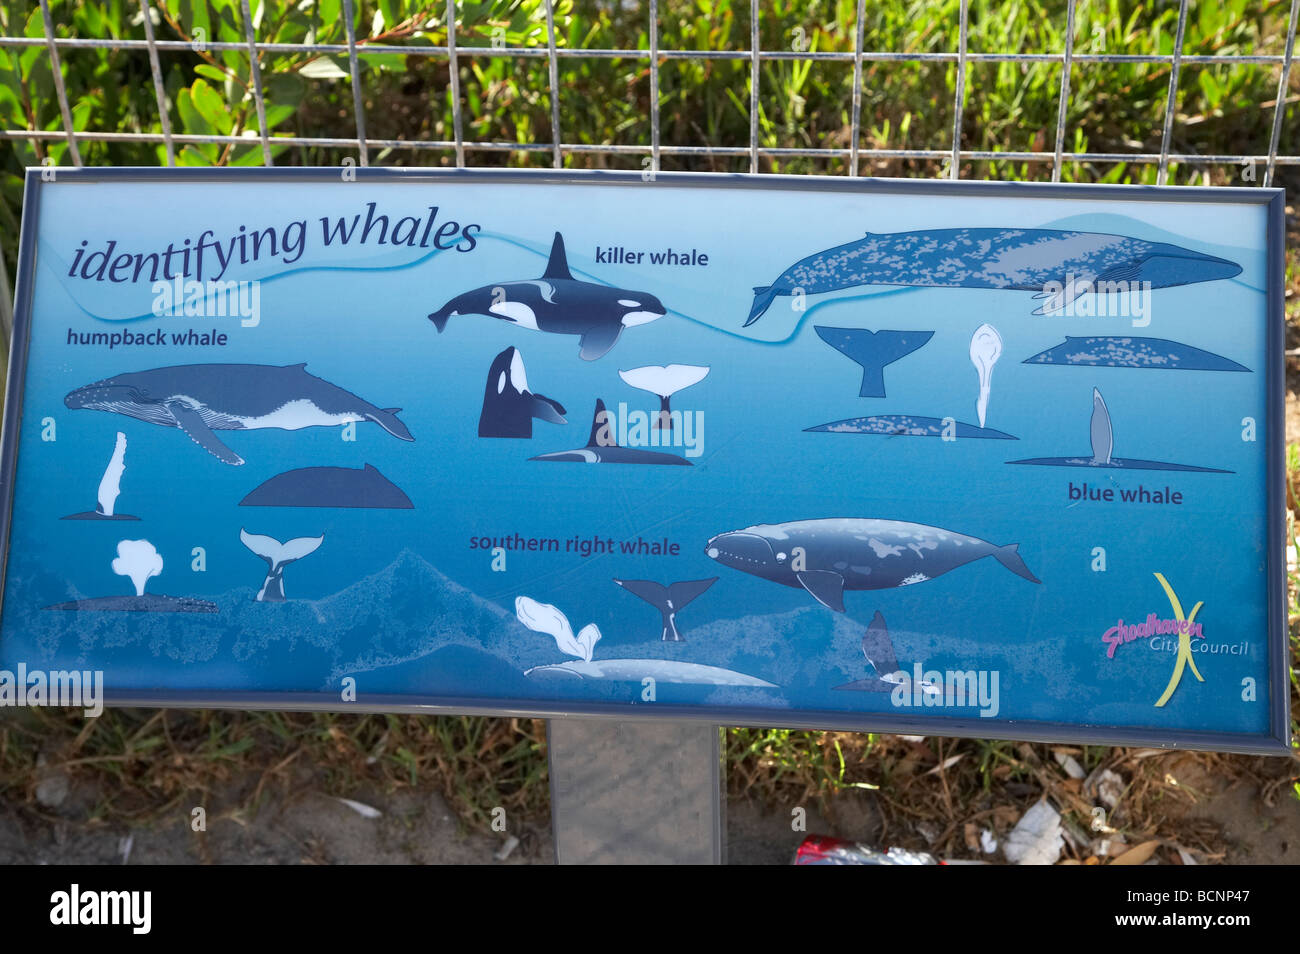 Whale Identification Chart Warden s Head Ulladulla Southern New South Wales Australia - Stock Image